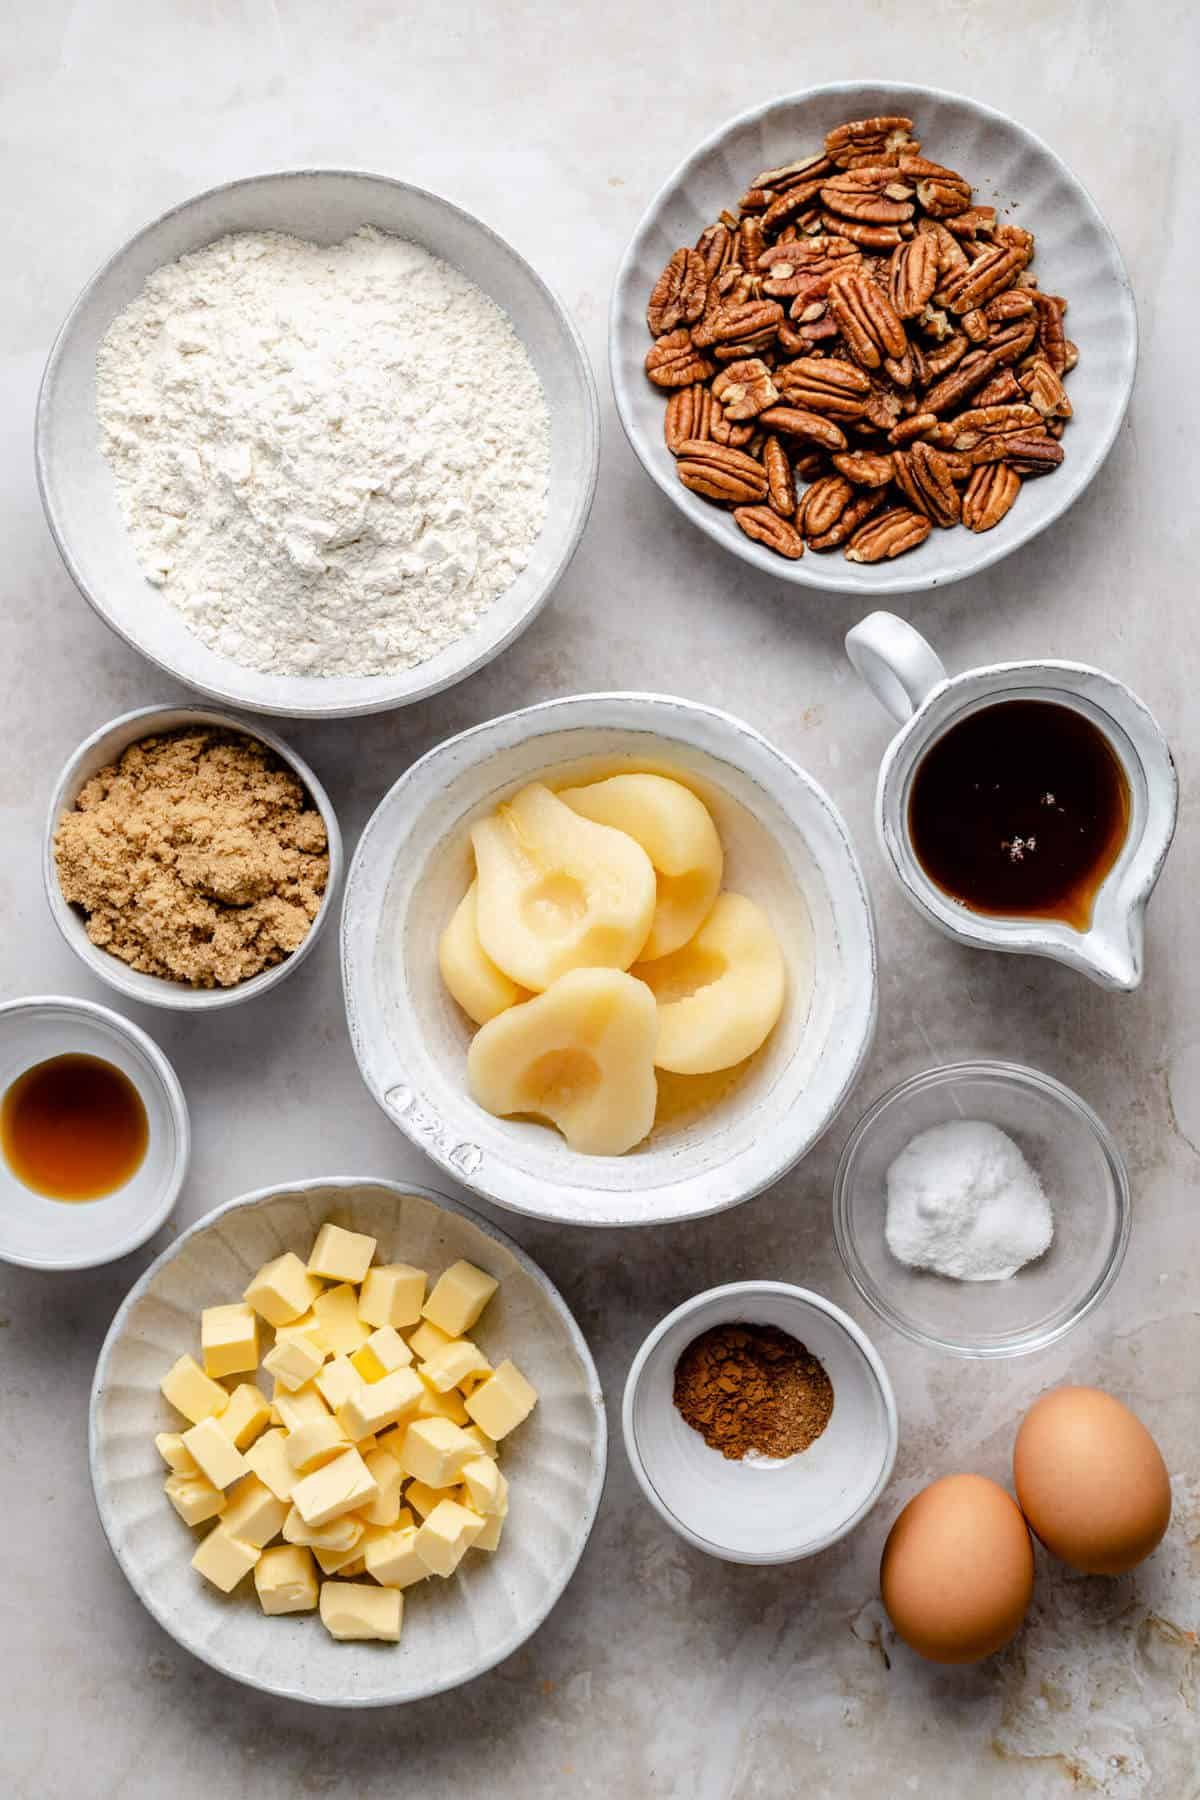 photo of various bowls containing the ingredients from the recipe, including canned pears, pecans, flour, butter and maple syrup